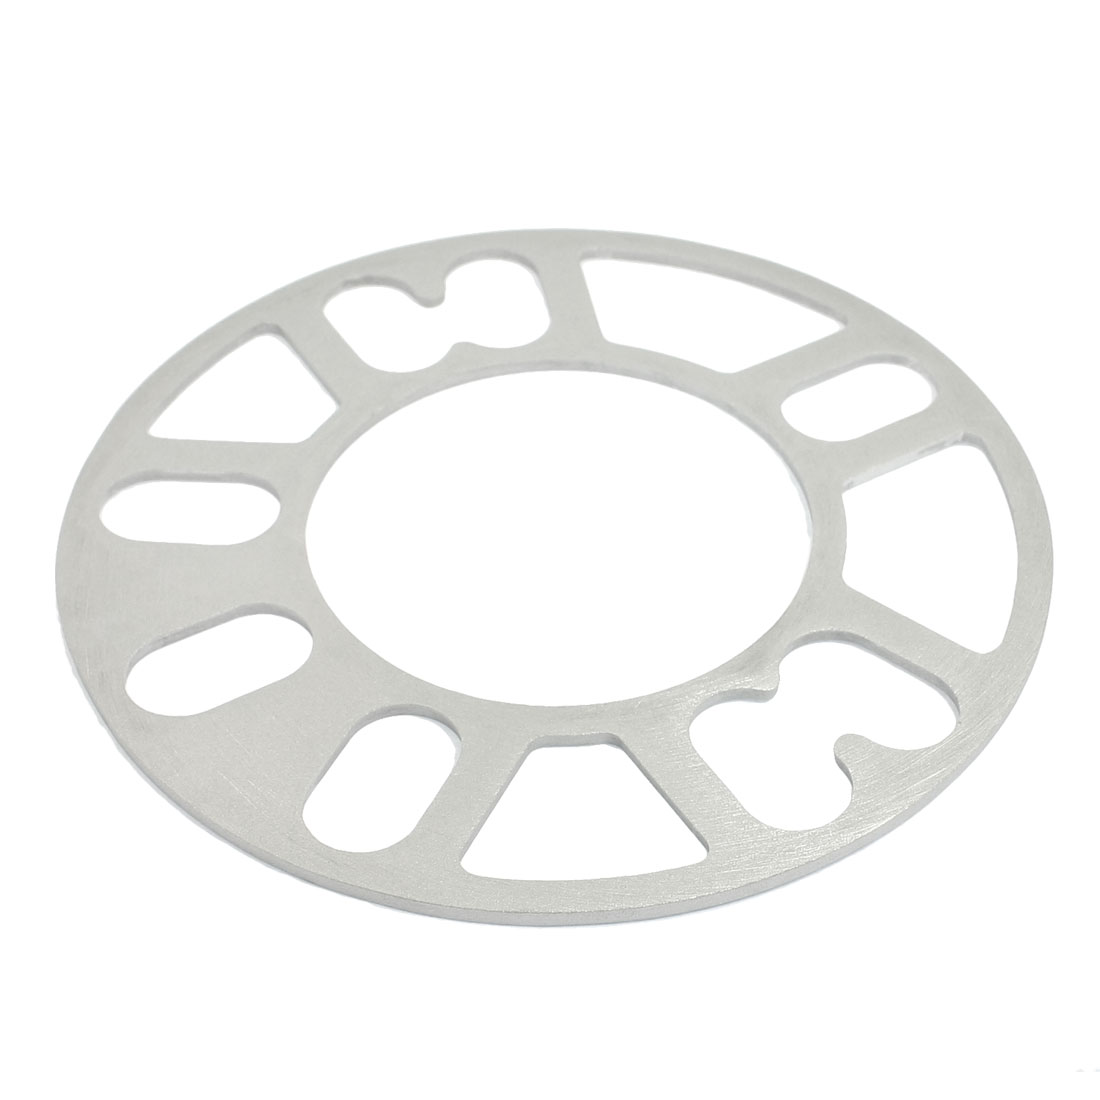 Aluminum Alloy 4 and 5 Lug 3mm Thickness Wheel Spacer Gasket